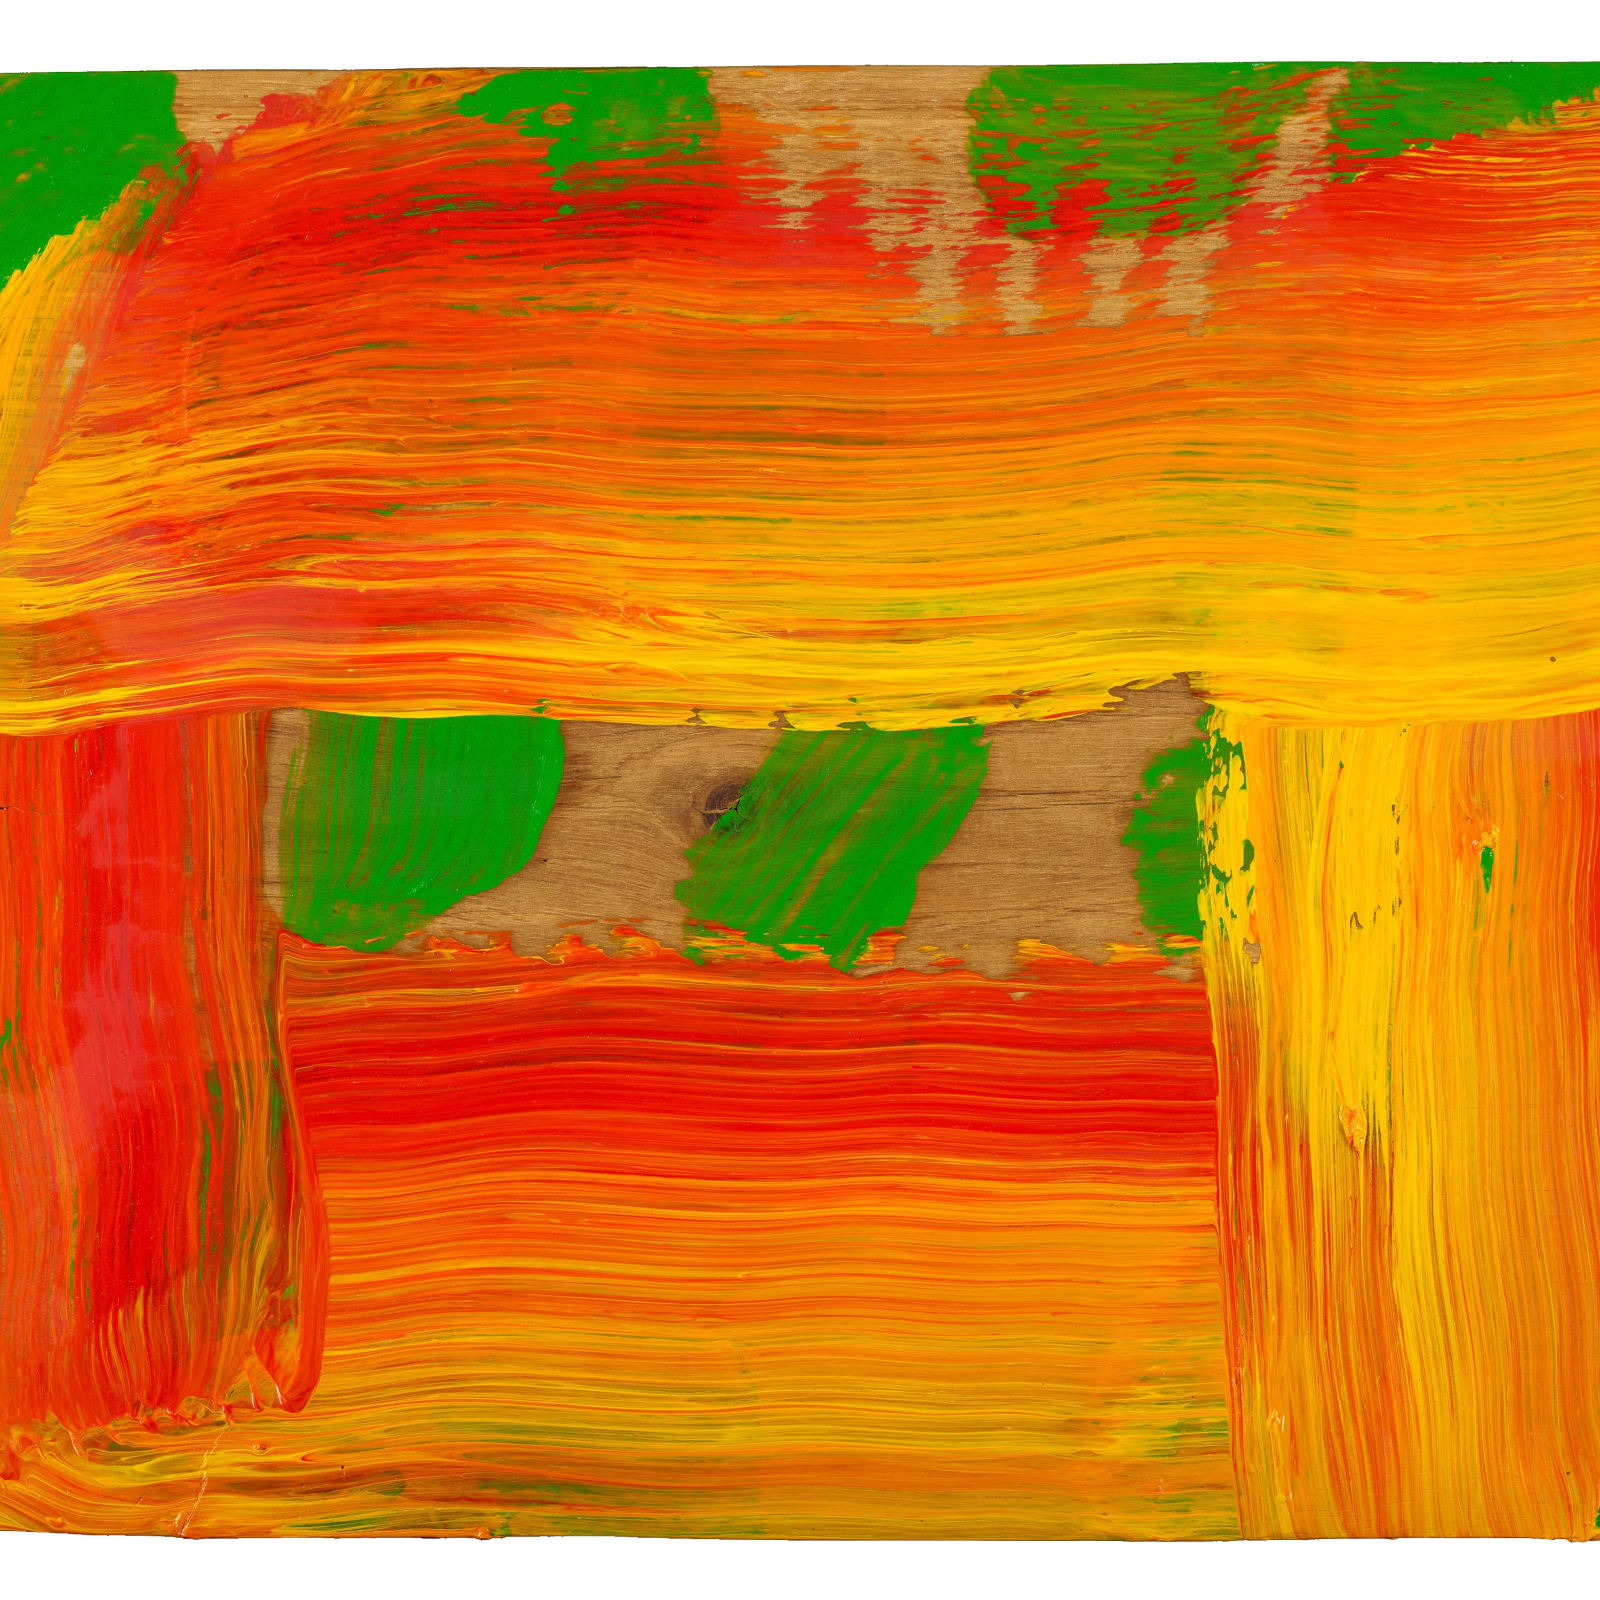 Howard Hodgkin  1932-2017  Through a Glass Darkly, 2015-16  oil on wood  10 7/8 x 16 1/4 inches / 27.5 x 41.3 cm